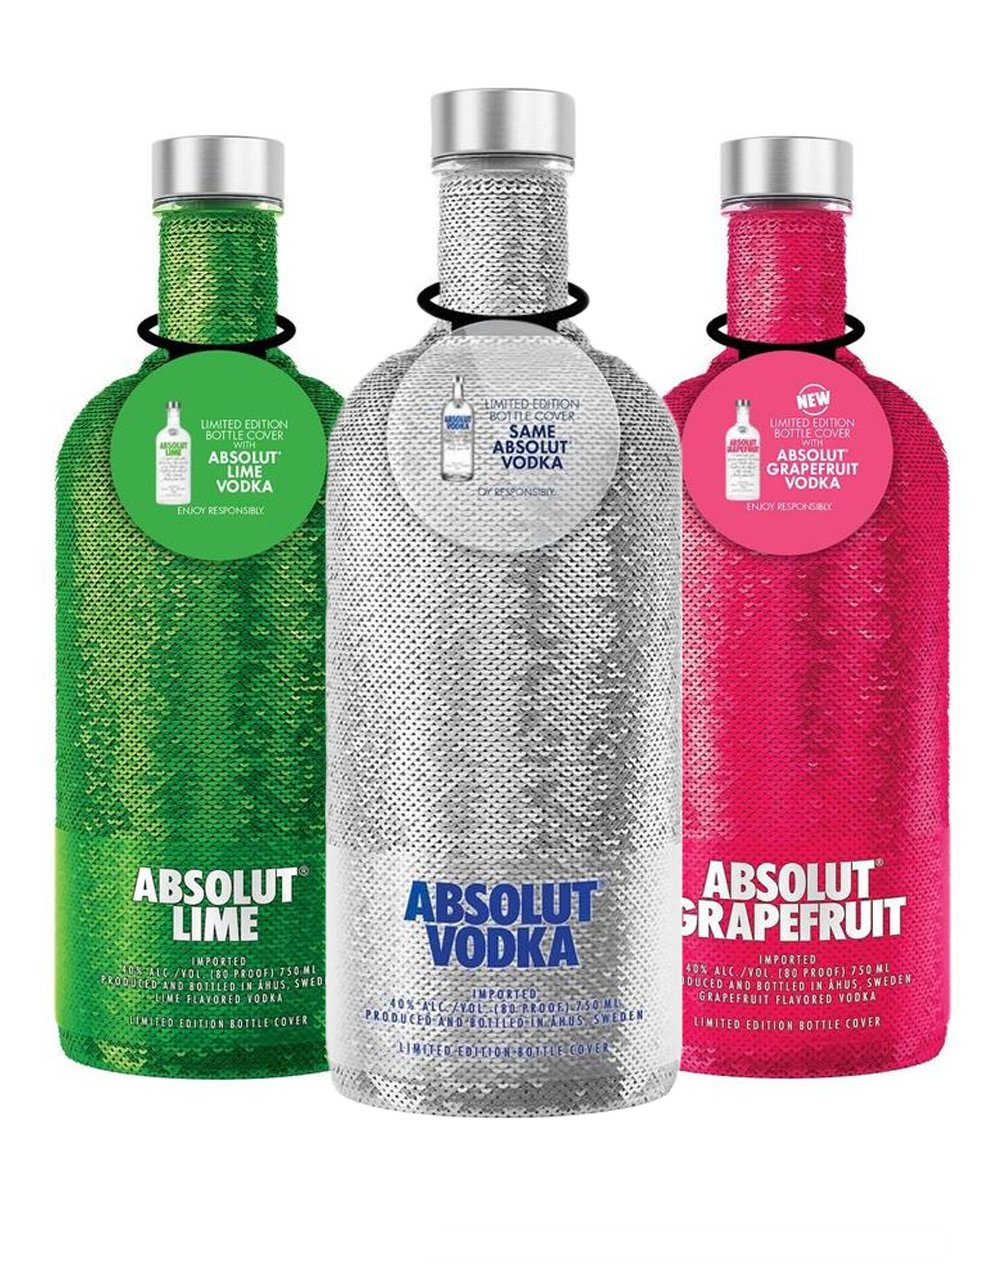 23. Absolut Holiday Sequin 3-Bottle Set - Add a little sparkle to a loved one's life with this trio of blinged-out bottles. The silver bottle contains plain Absolut vodka, while the green bottle has lime-flavored liquor and the red bottle sports Absolut Grapefruit.